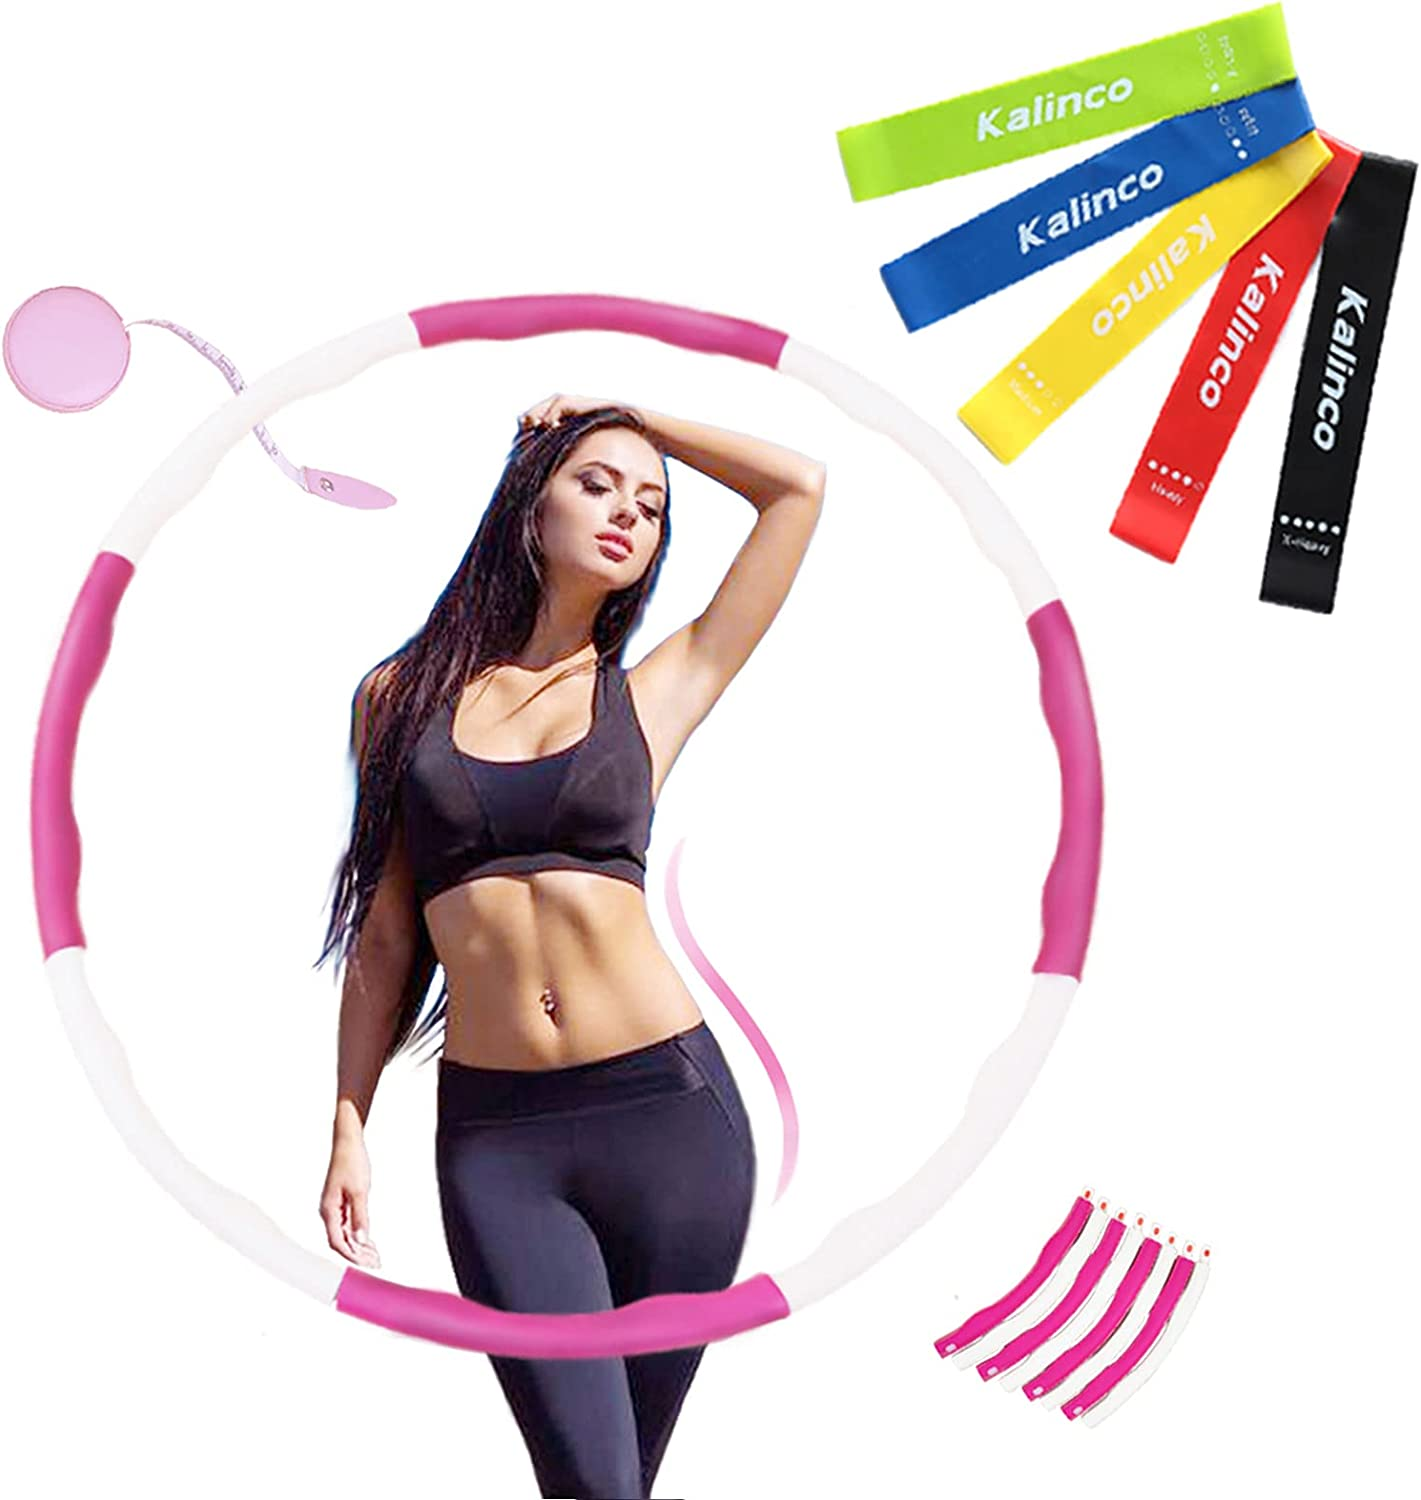 KALINCO Exercise Hoops for Adults Weight Selling Max 70% OFF rankings Weighted Loss Hoop